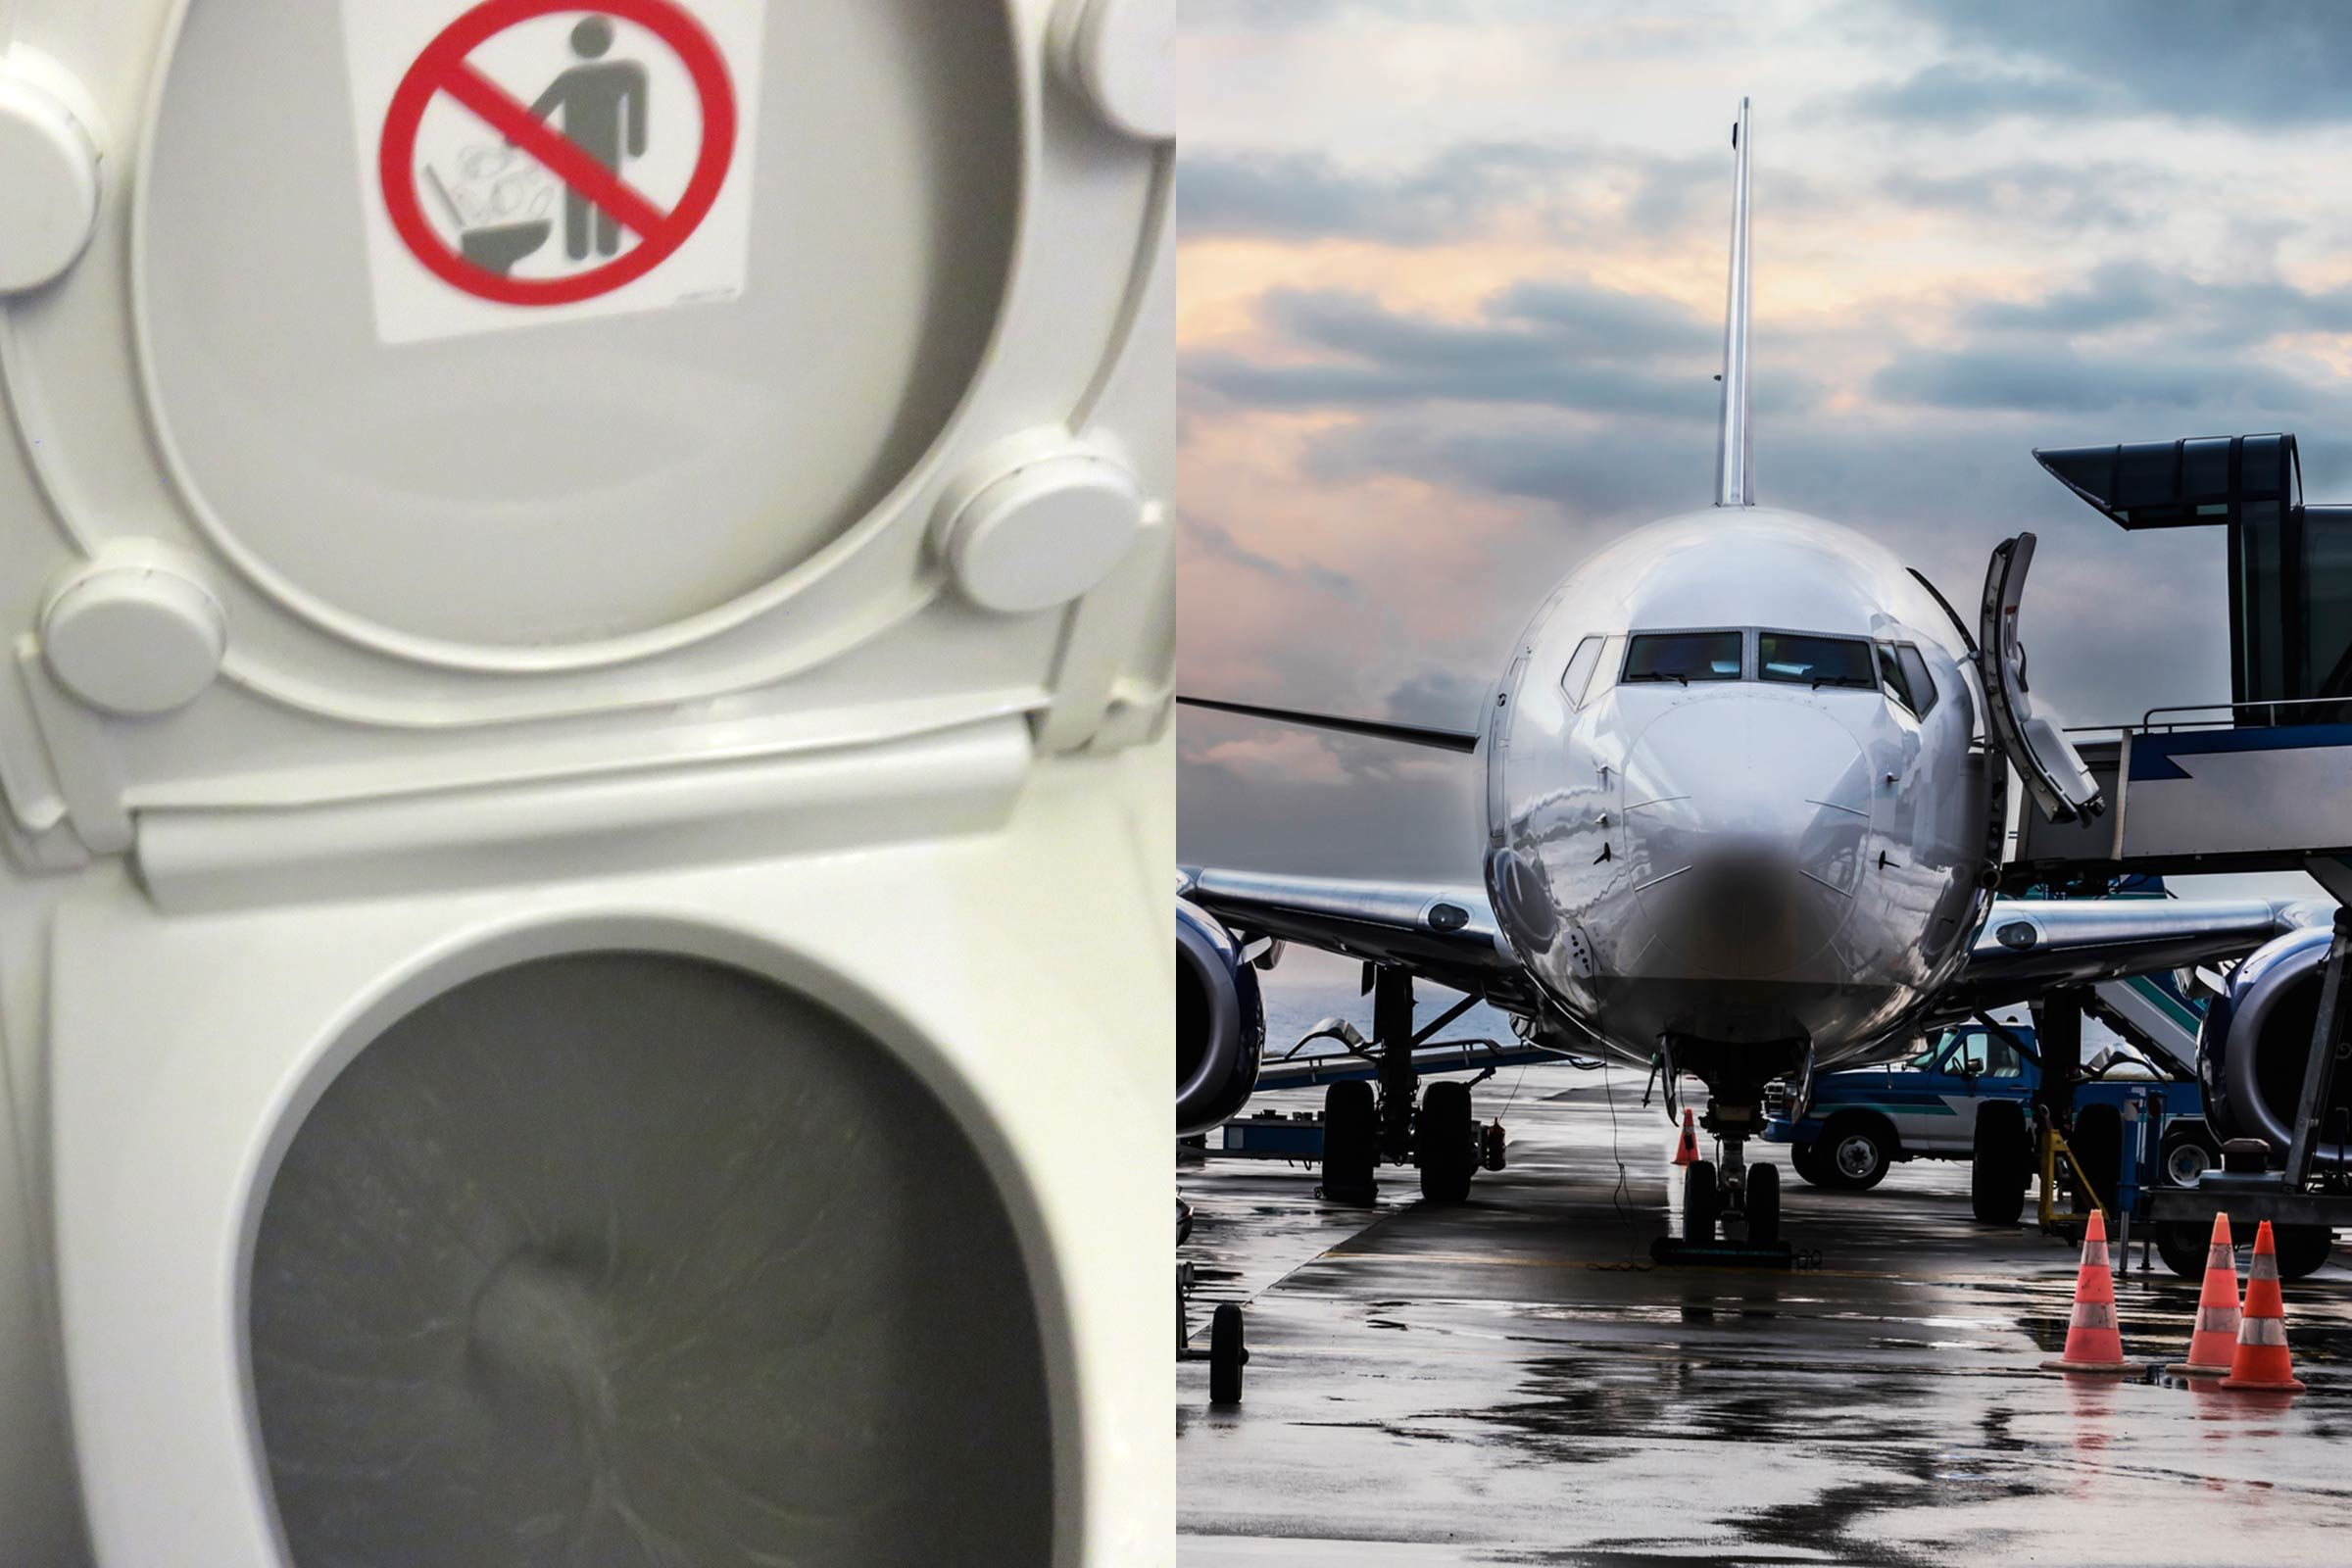 what actually happens when you flush an airplane toilet?